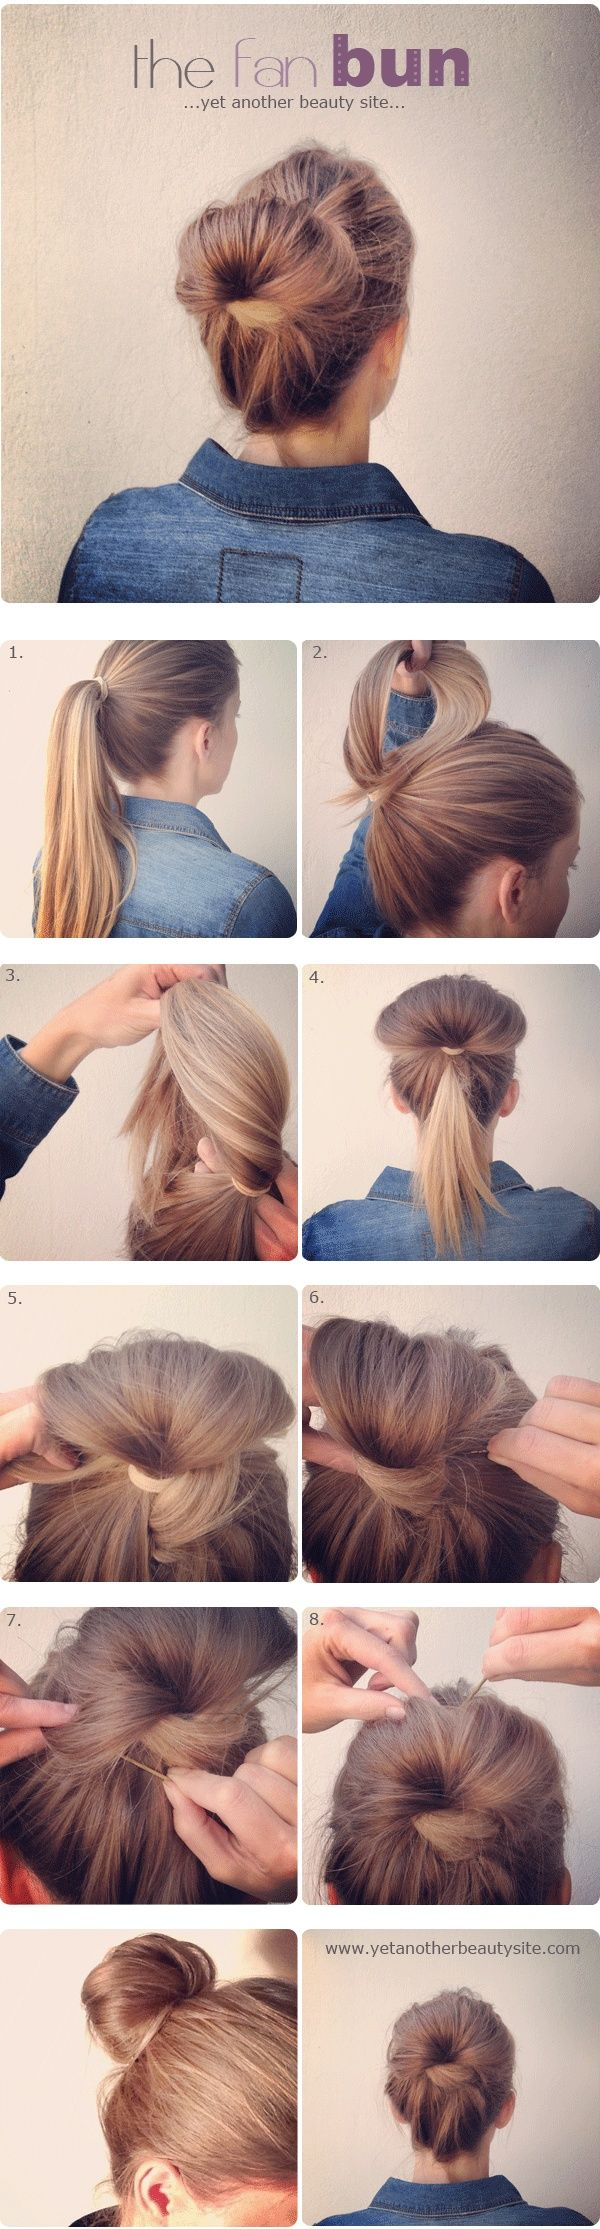 the fan bun how-to